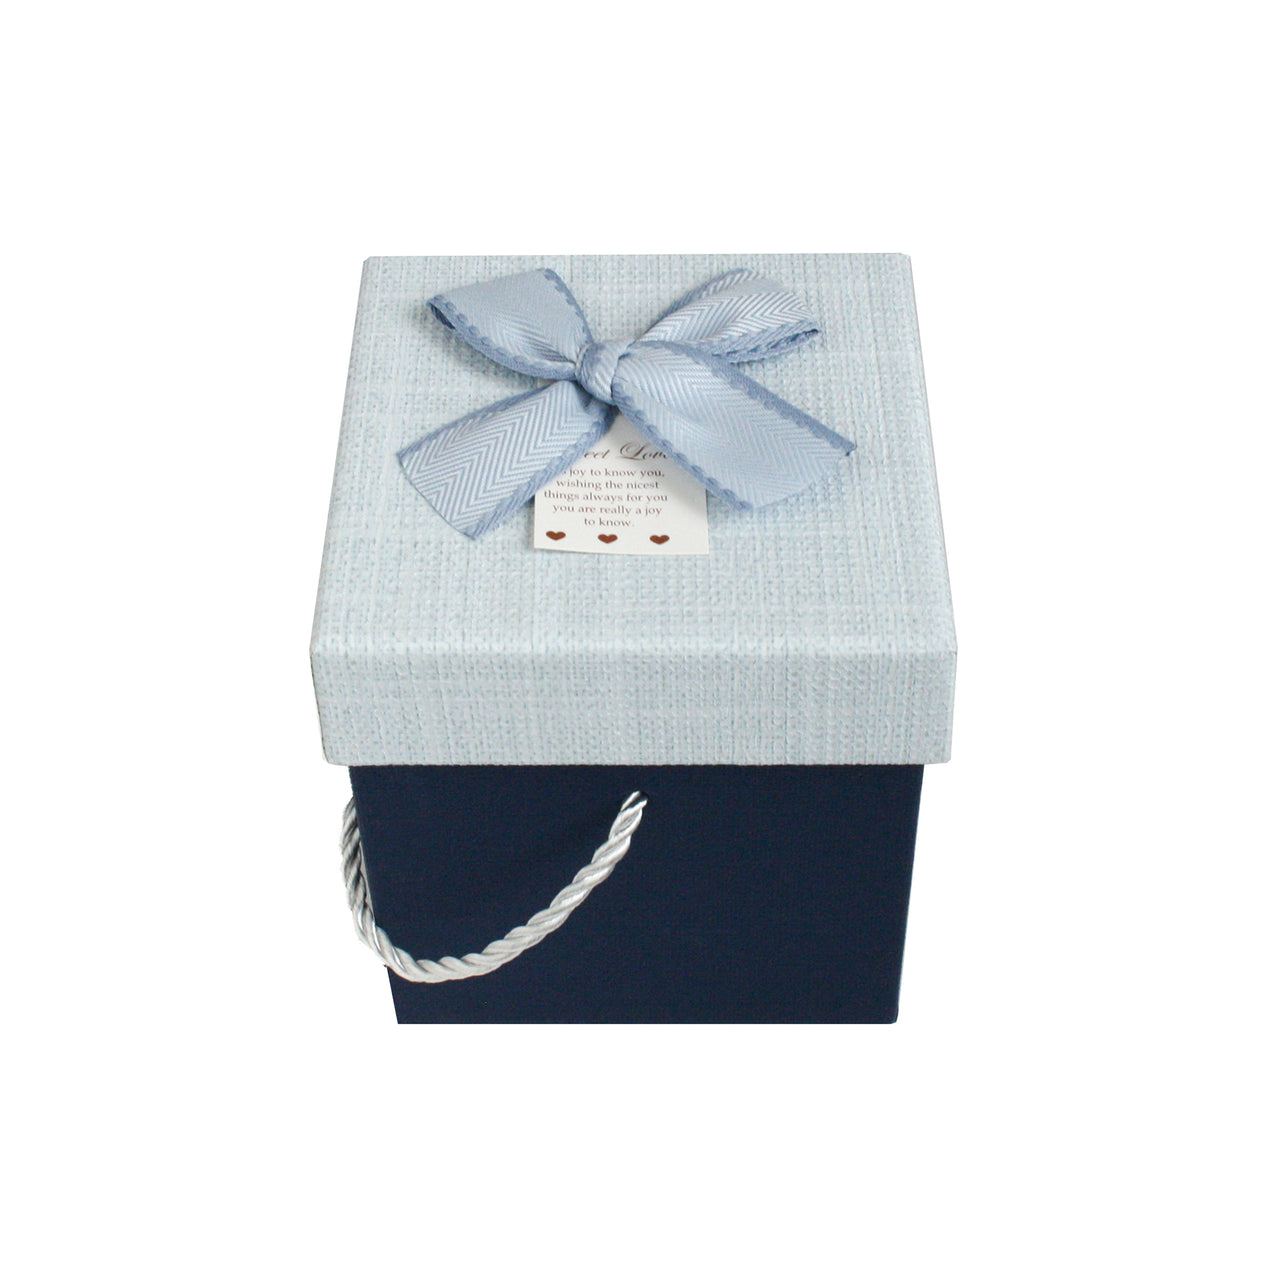 Small Blue Bow Gift Box